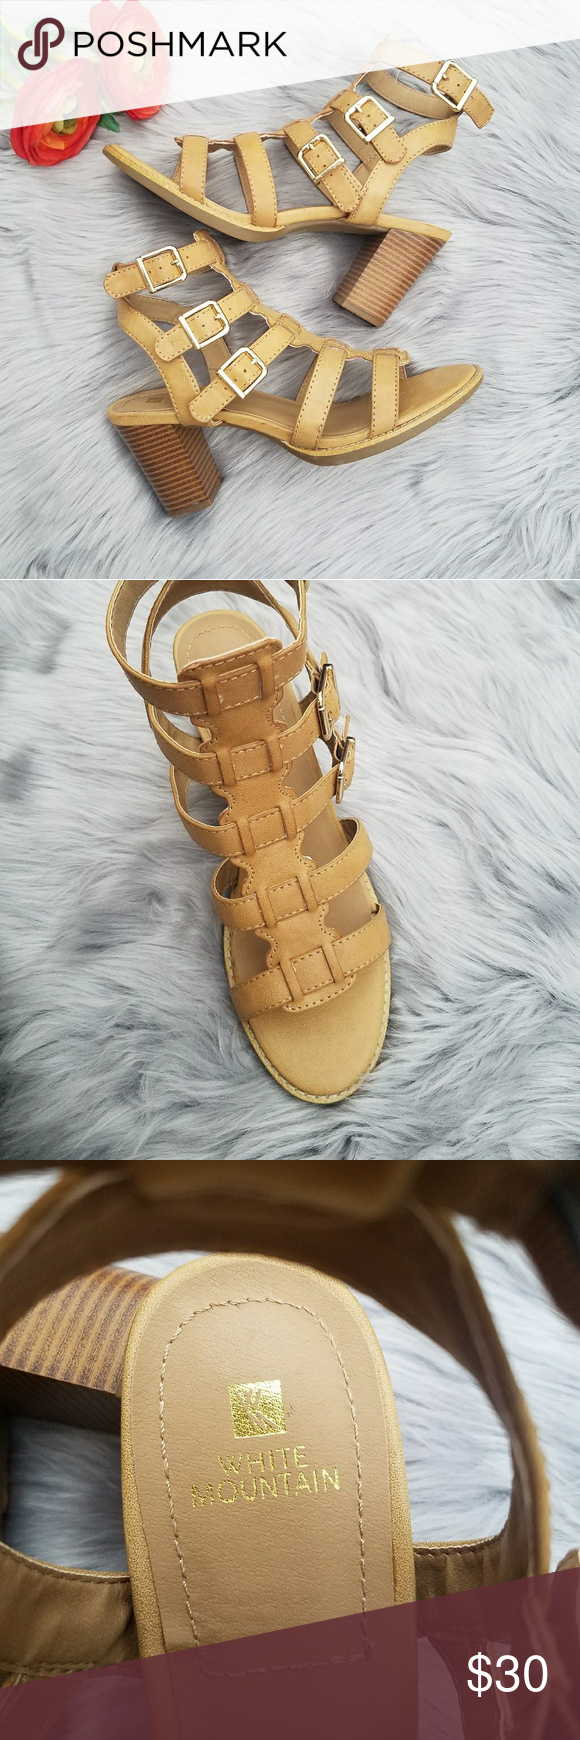 0ec04970e05 White Mountain Gemmy Sandals NWOT White Mountain s Gemmy sandals capture a  nostalgic feel with a chunky heel and strappy silhouette that s great with  jeans ...